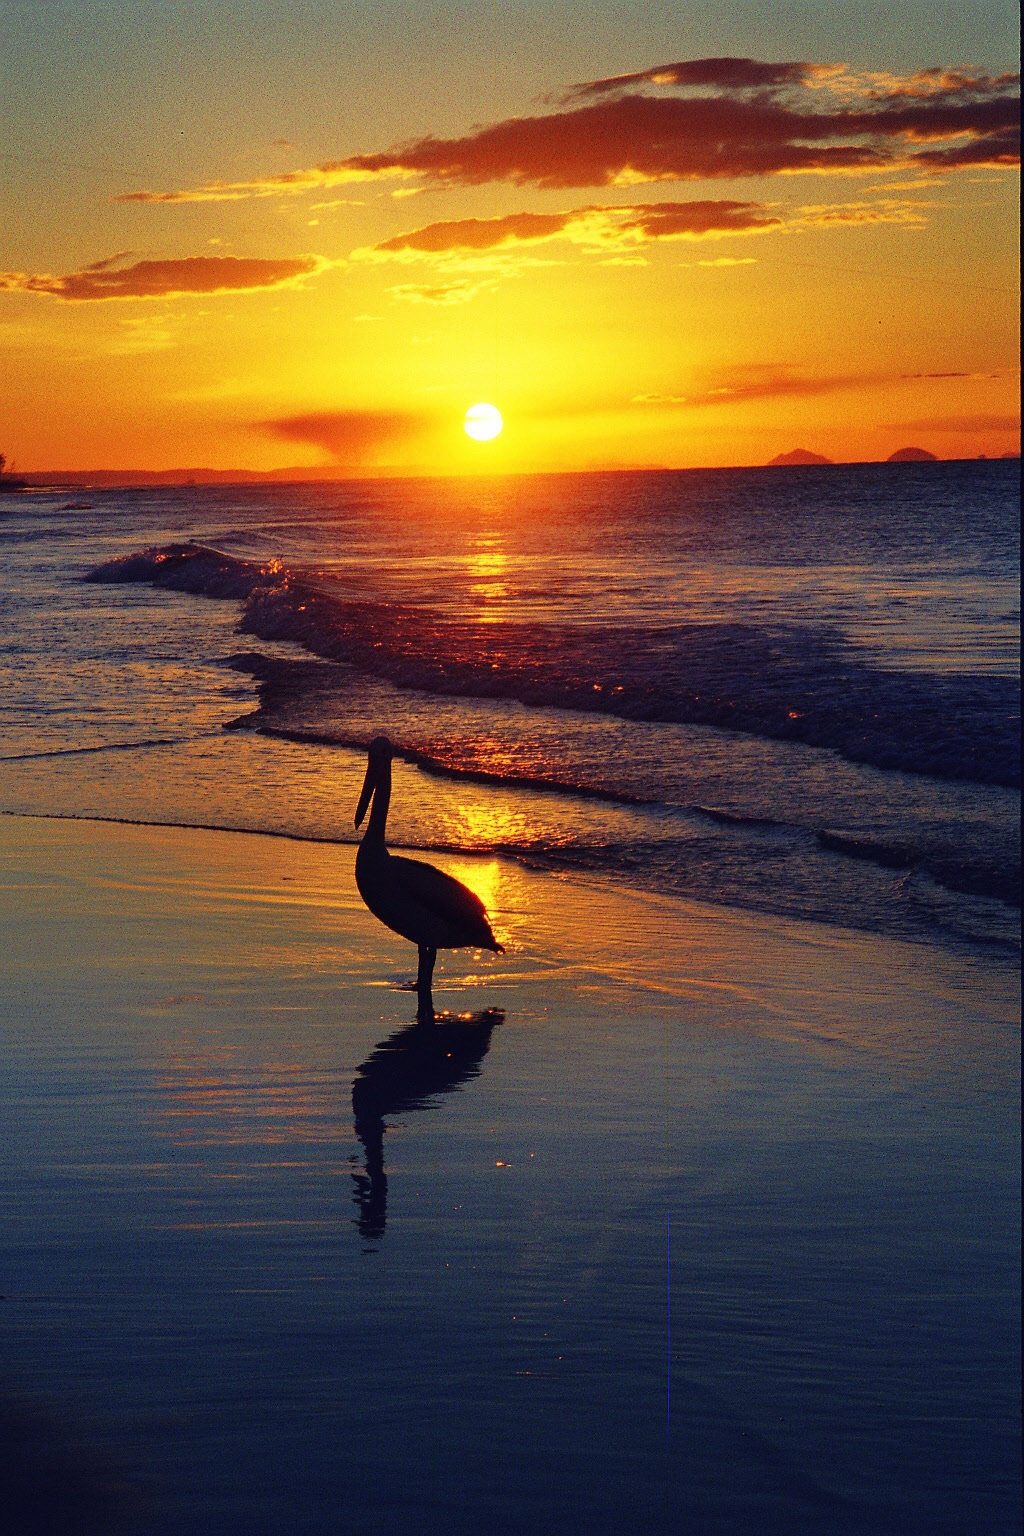 Pelican sunset on Moreton Island, Queensland, Australia